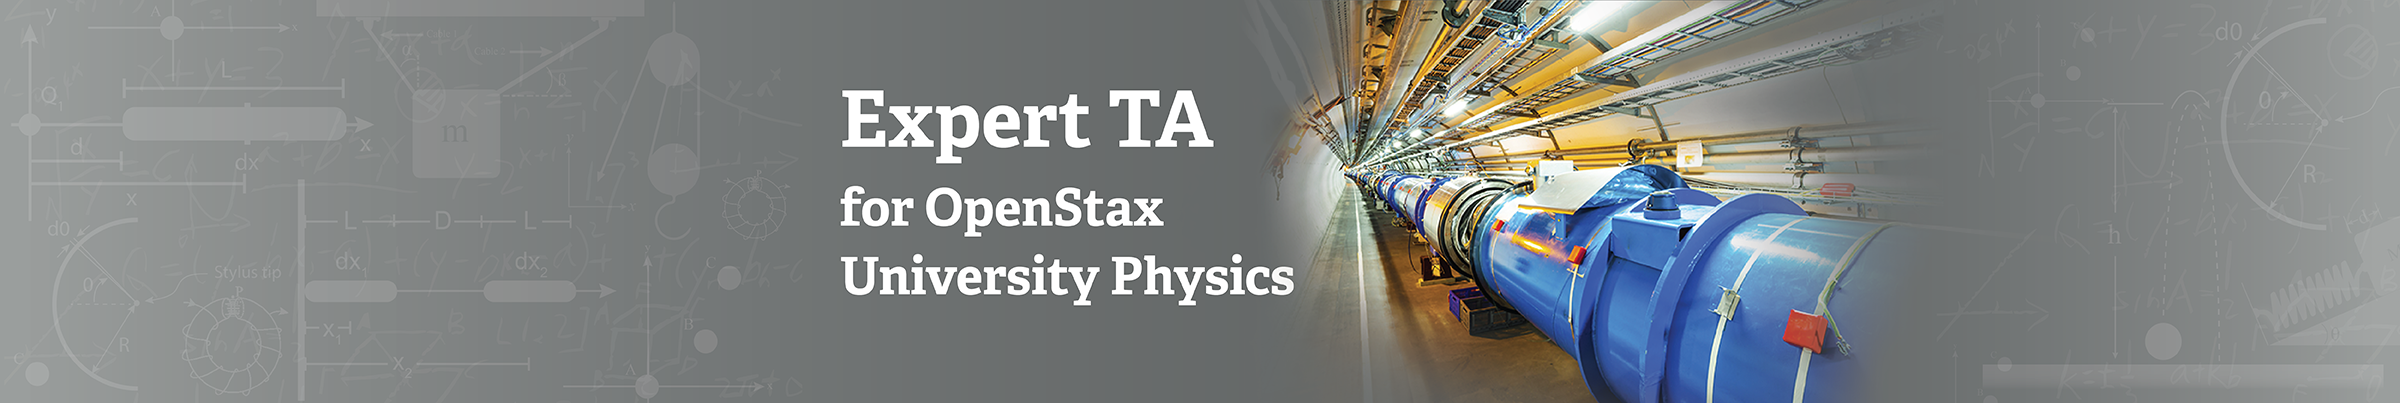 The Expert TA – University Physics